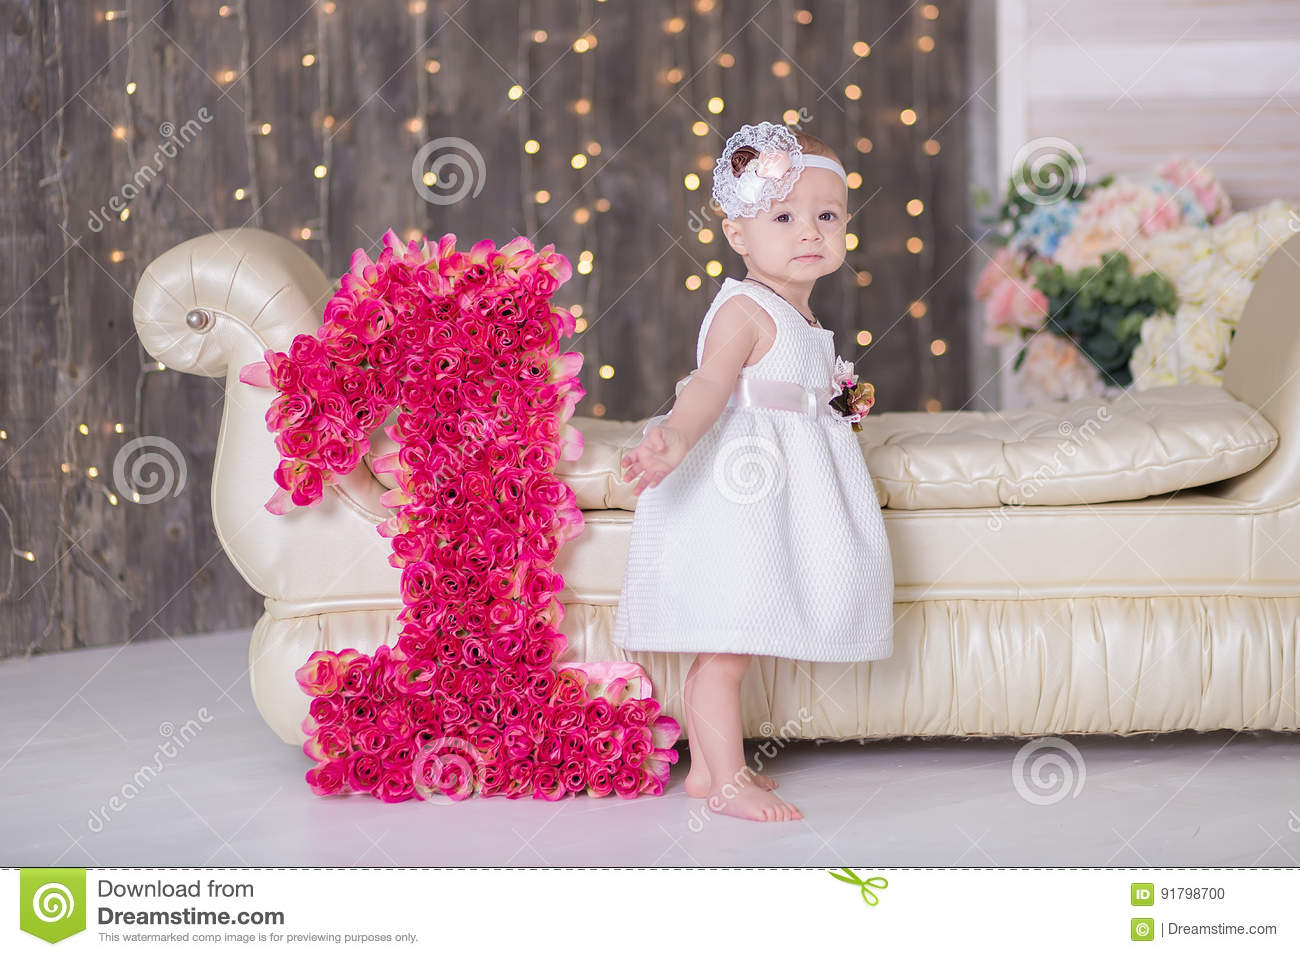 Cute Baby Girl 1 2 Year Old Sitting On Floor With Pink Balloons In